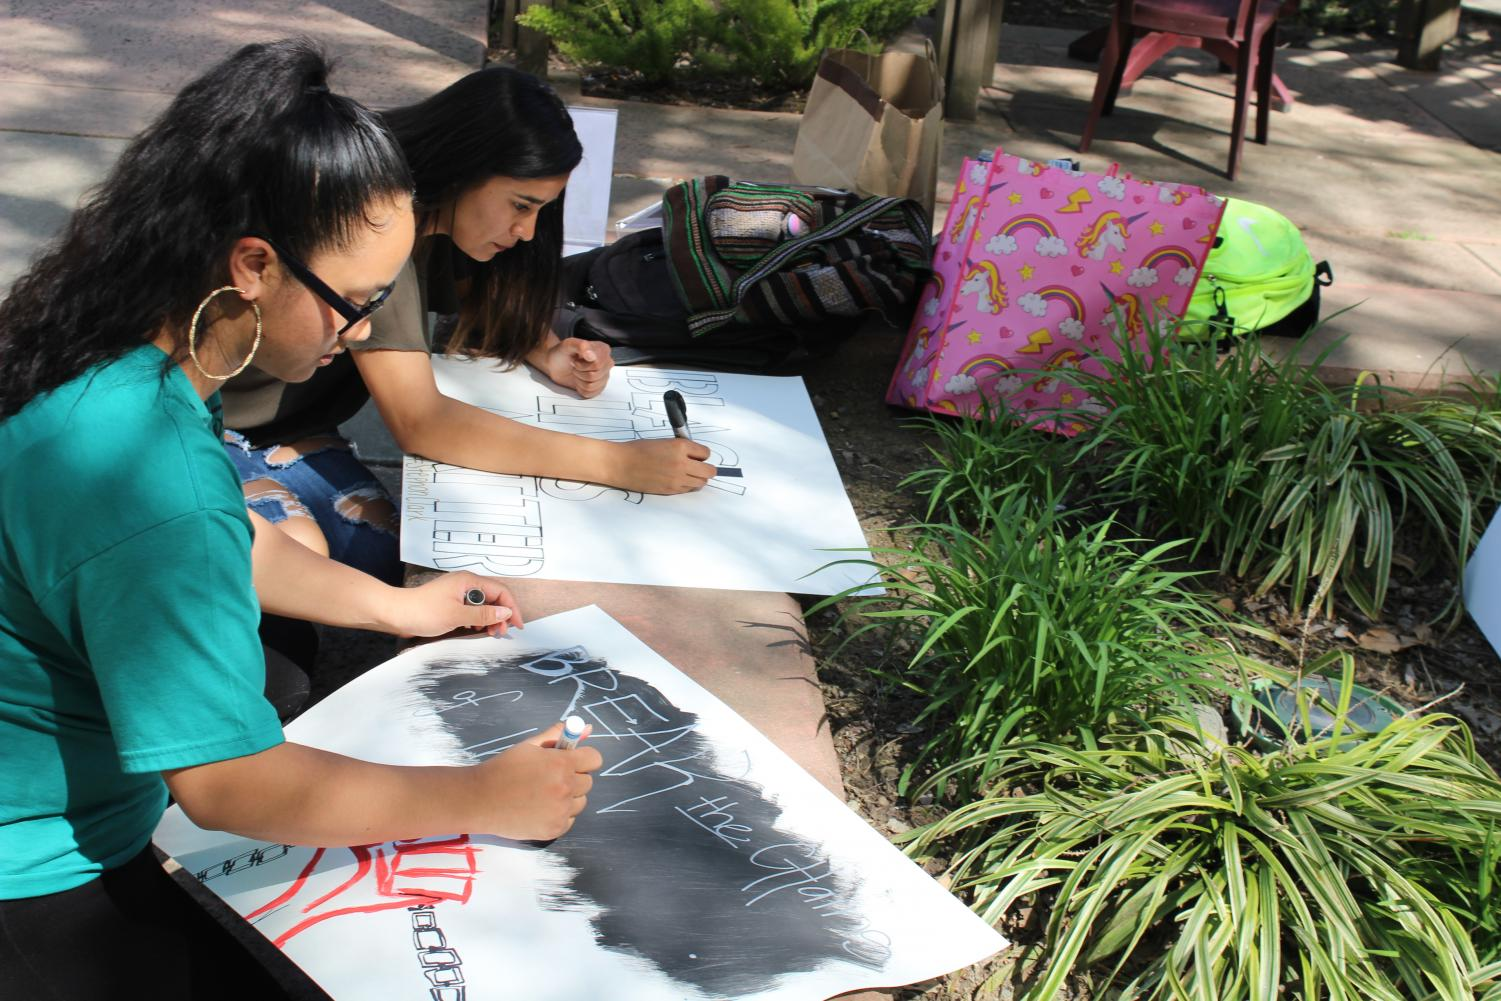 Sacramento State students Monica Linhthasack (closest) and Vanessa Trejo creating posters on Thursday March 29 in preparation for the event Linhthasack organized that will take place on April 3. Linhthasack's goal is